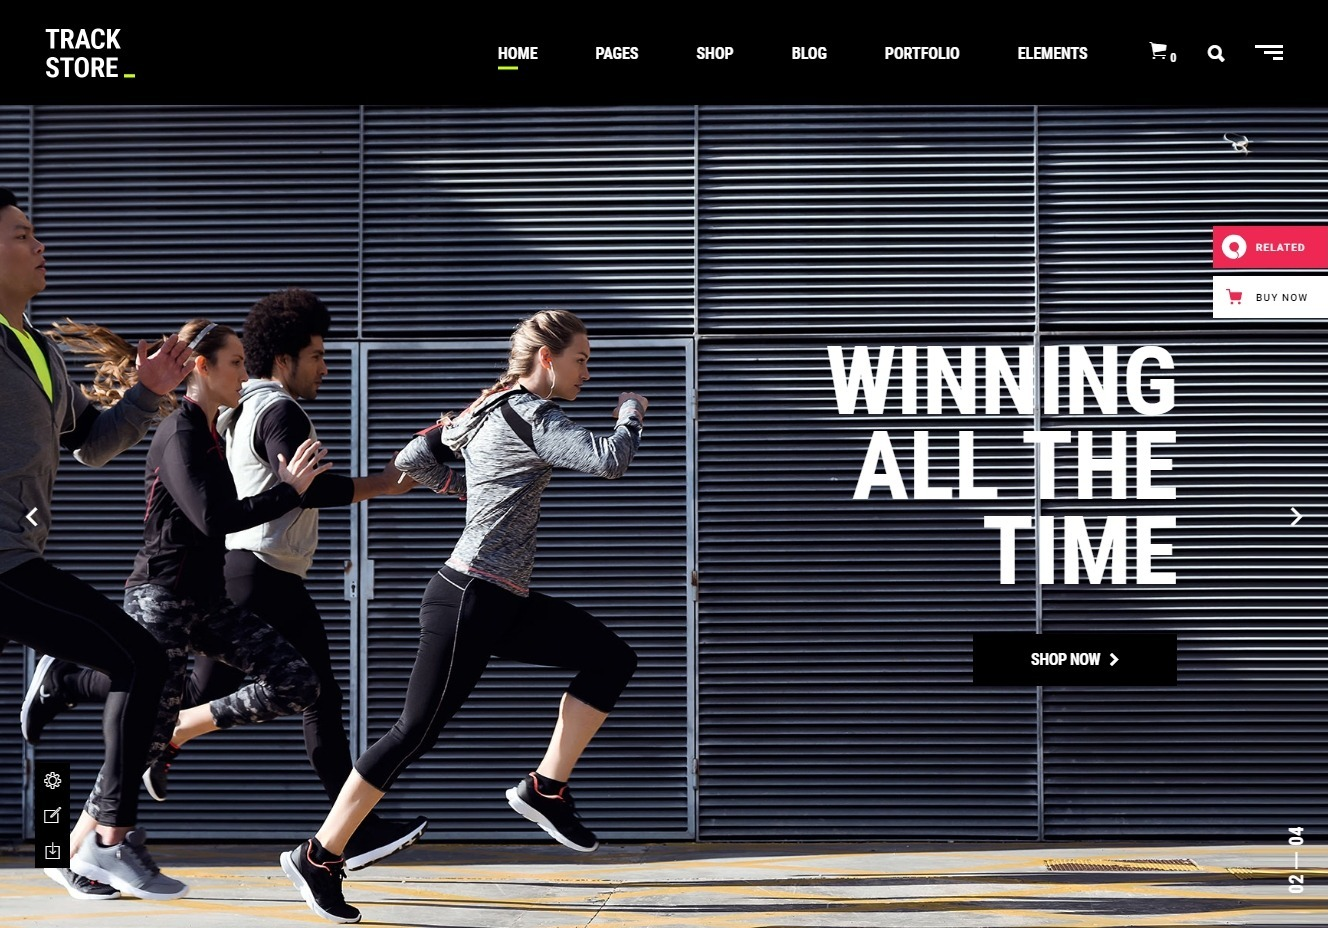 TrackStore WordPress Theme for eCommerce Sporting Goods Shop